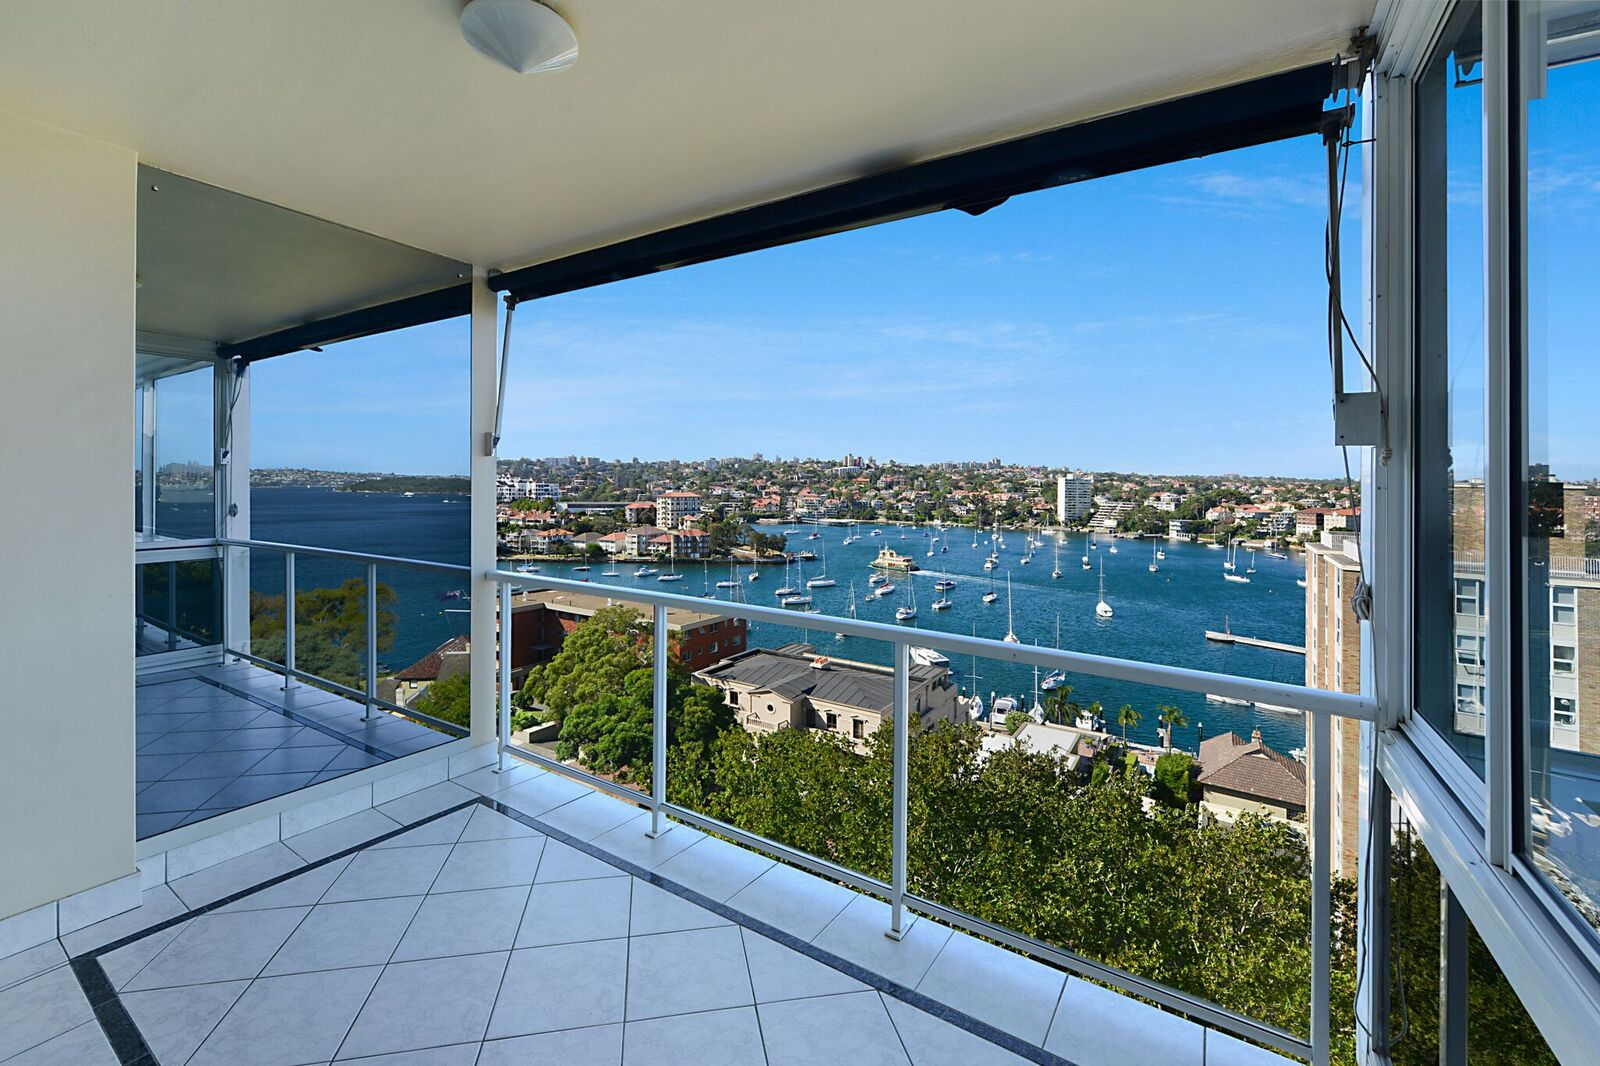 6 23 holbrook ave kirribilli nsw 2061 apartment for rent 1400 2150 for Holbrook swimming pool opening hours